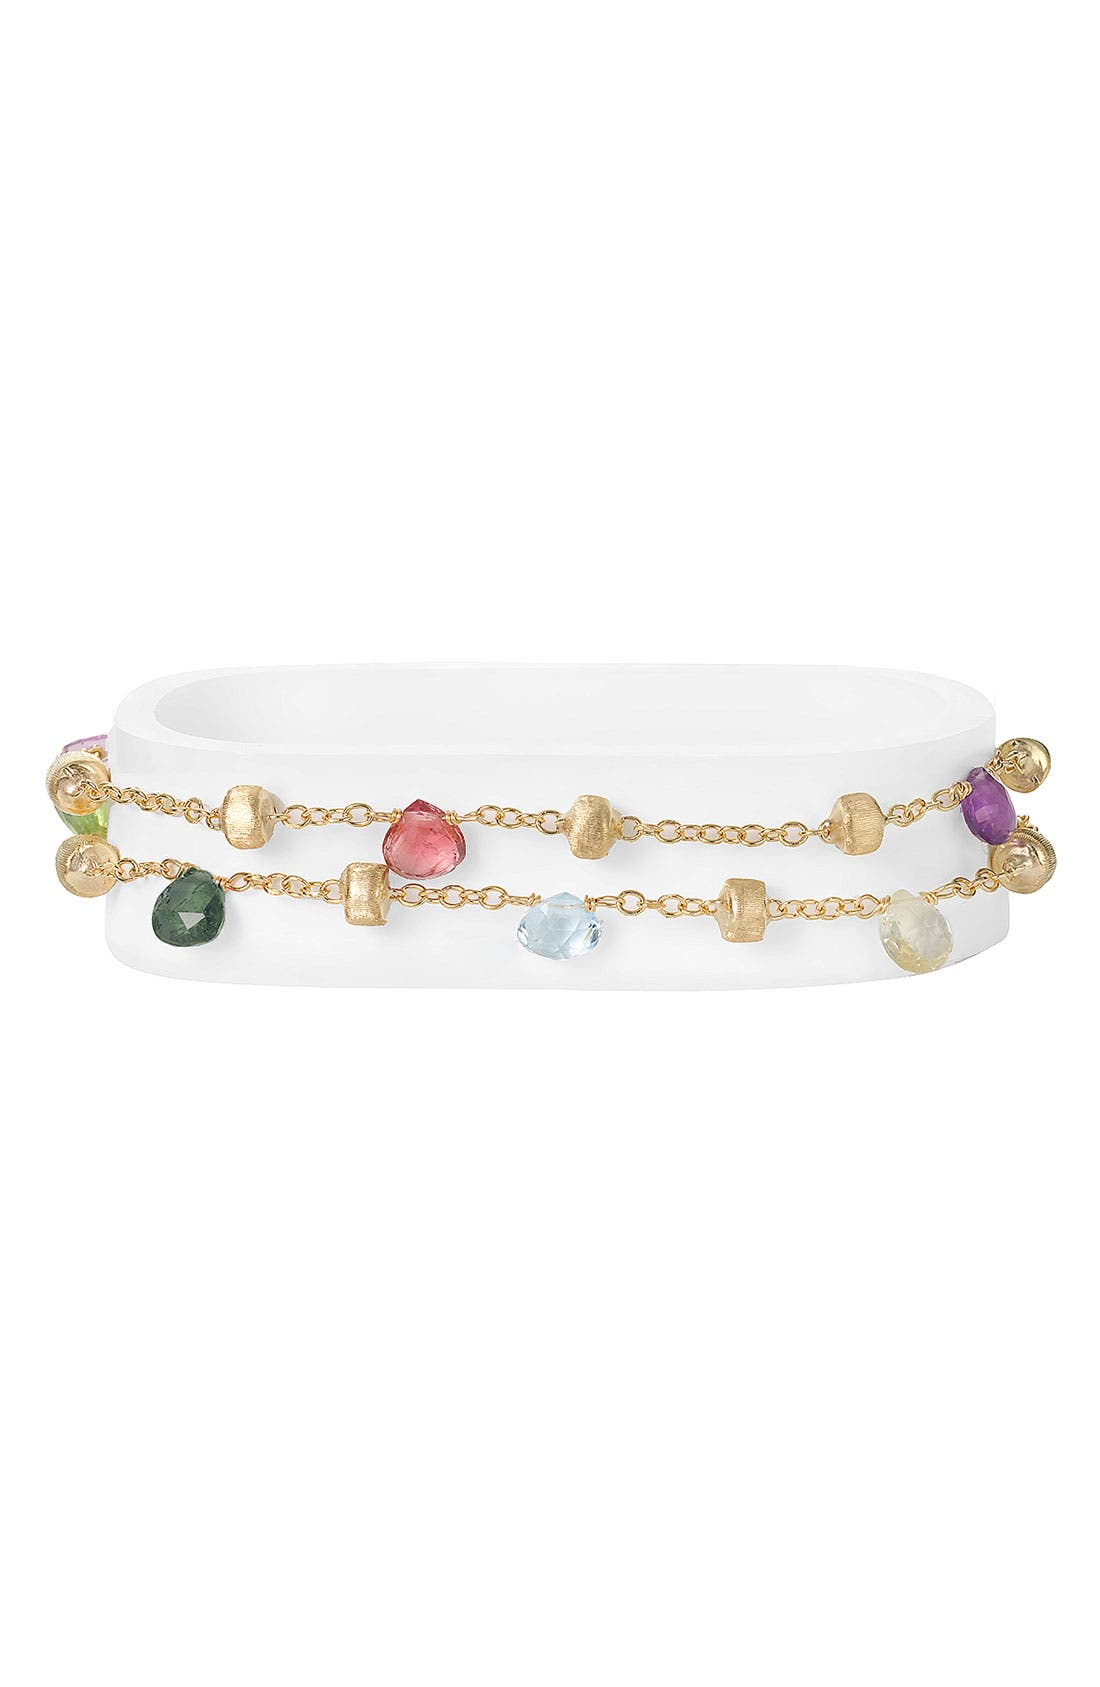 Alternate Image 1 Selected - Marco Bicego 'Paradise' Double Strand Semiprecious Stone Bracelet